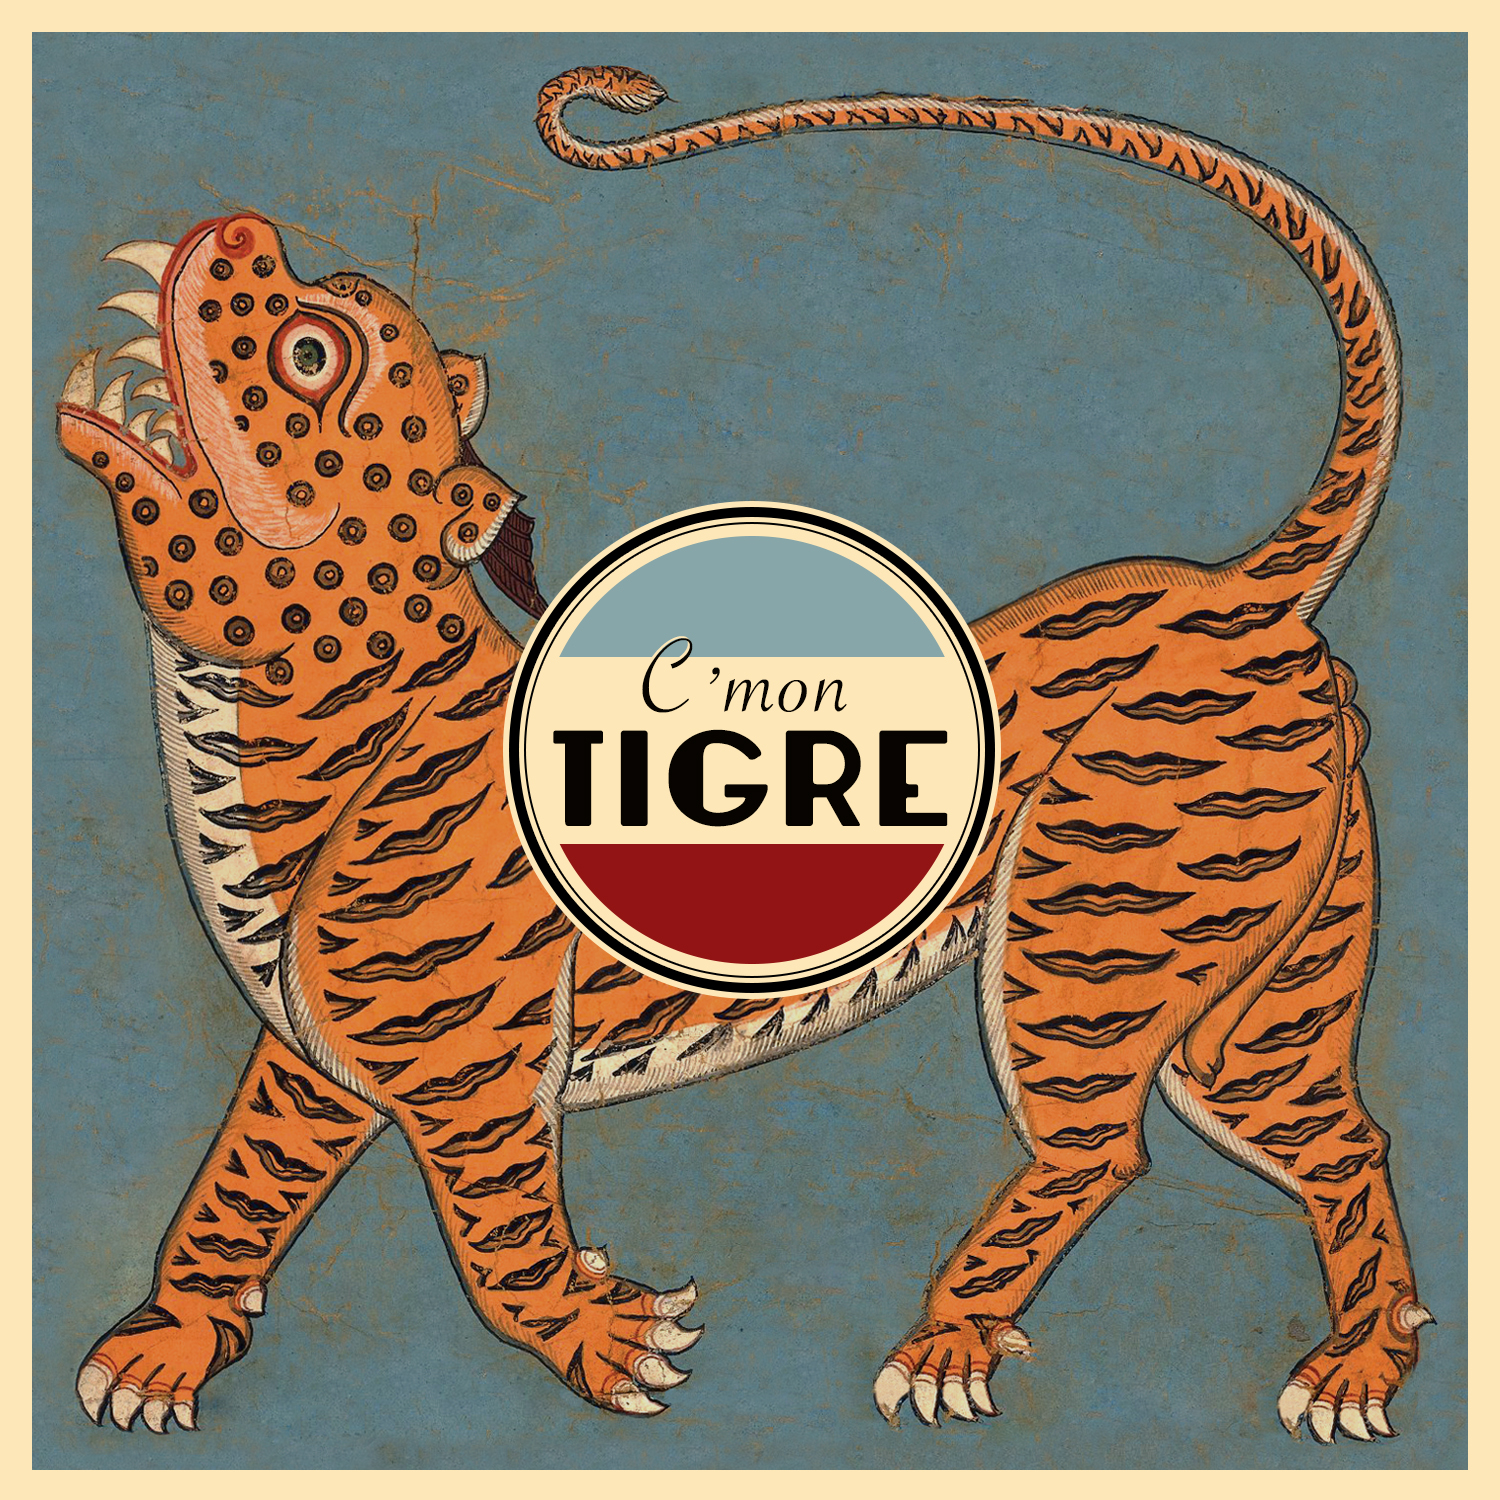 C'mon Tigre - C'mon TigreReleased on Oct 13th 2014CDs and DOUBLE LPs are available hereDIGITAL ALBUM available on ITunes Amazon